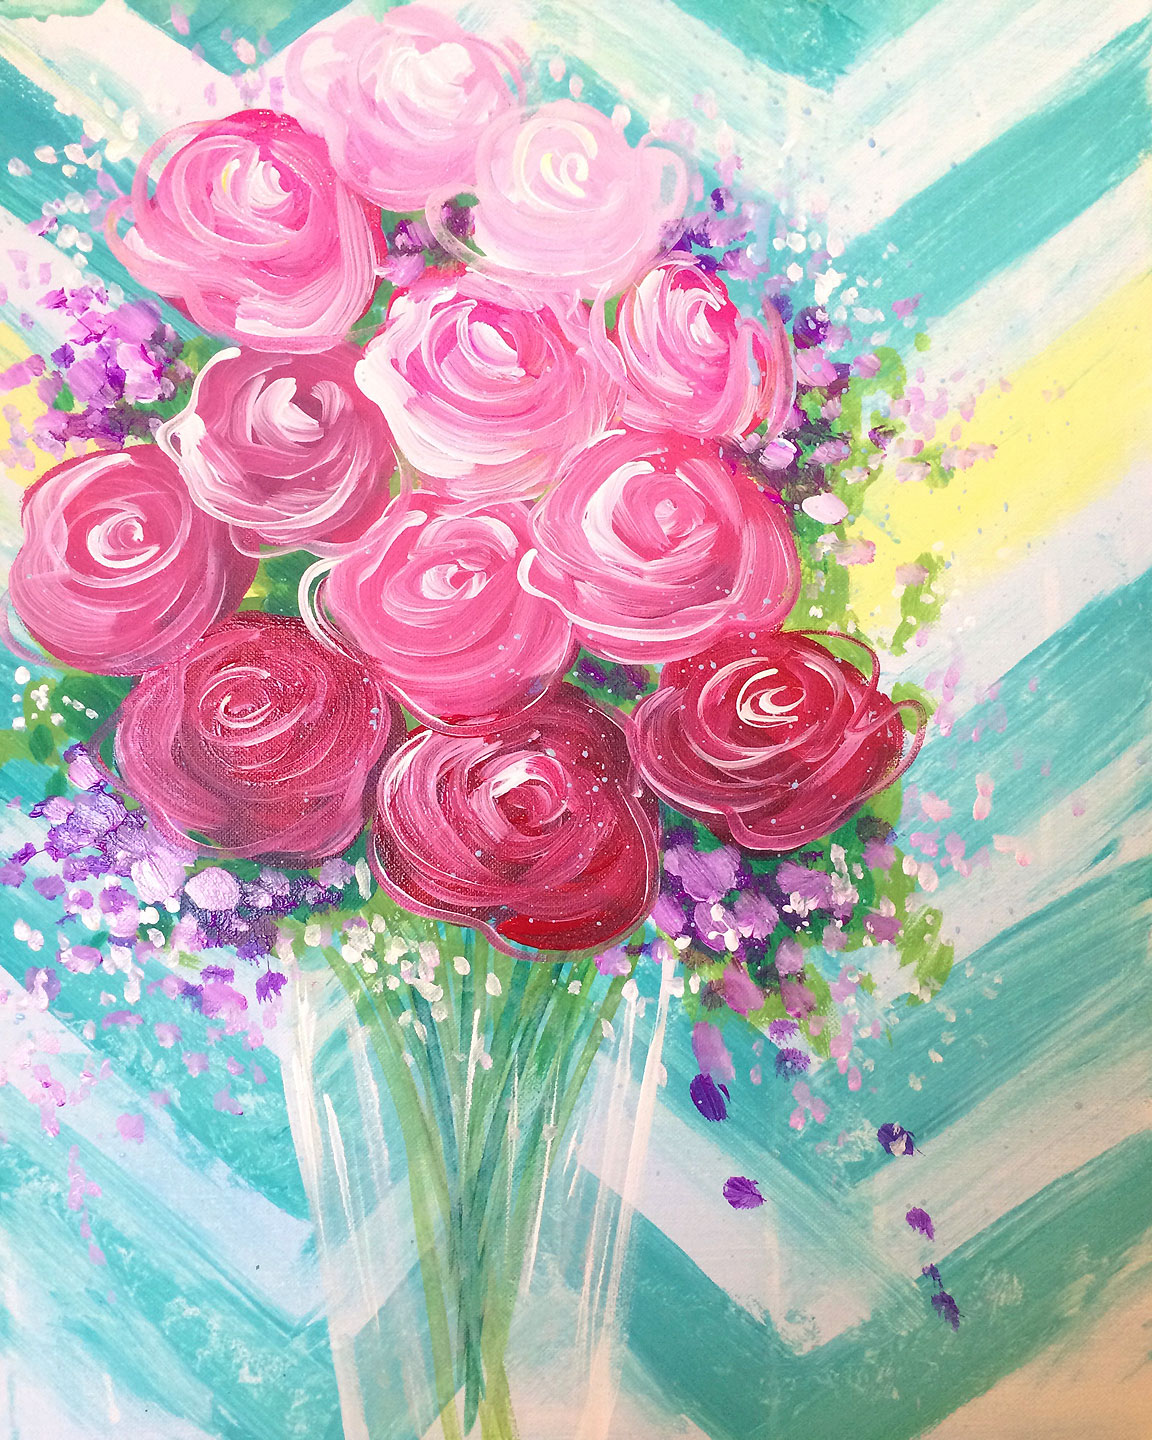 Expressive brush strokes, gentle spring colors and a subtle touch of ombre come together to form a lavish Pinot's arrangement.